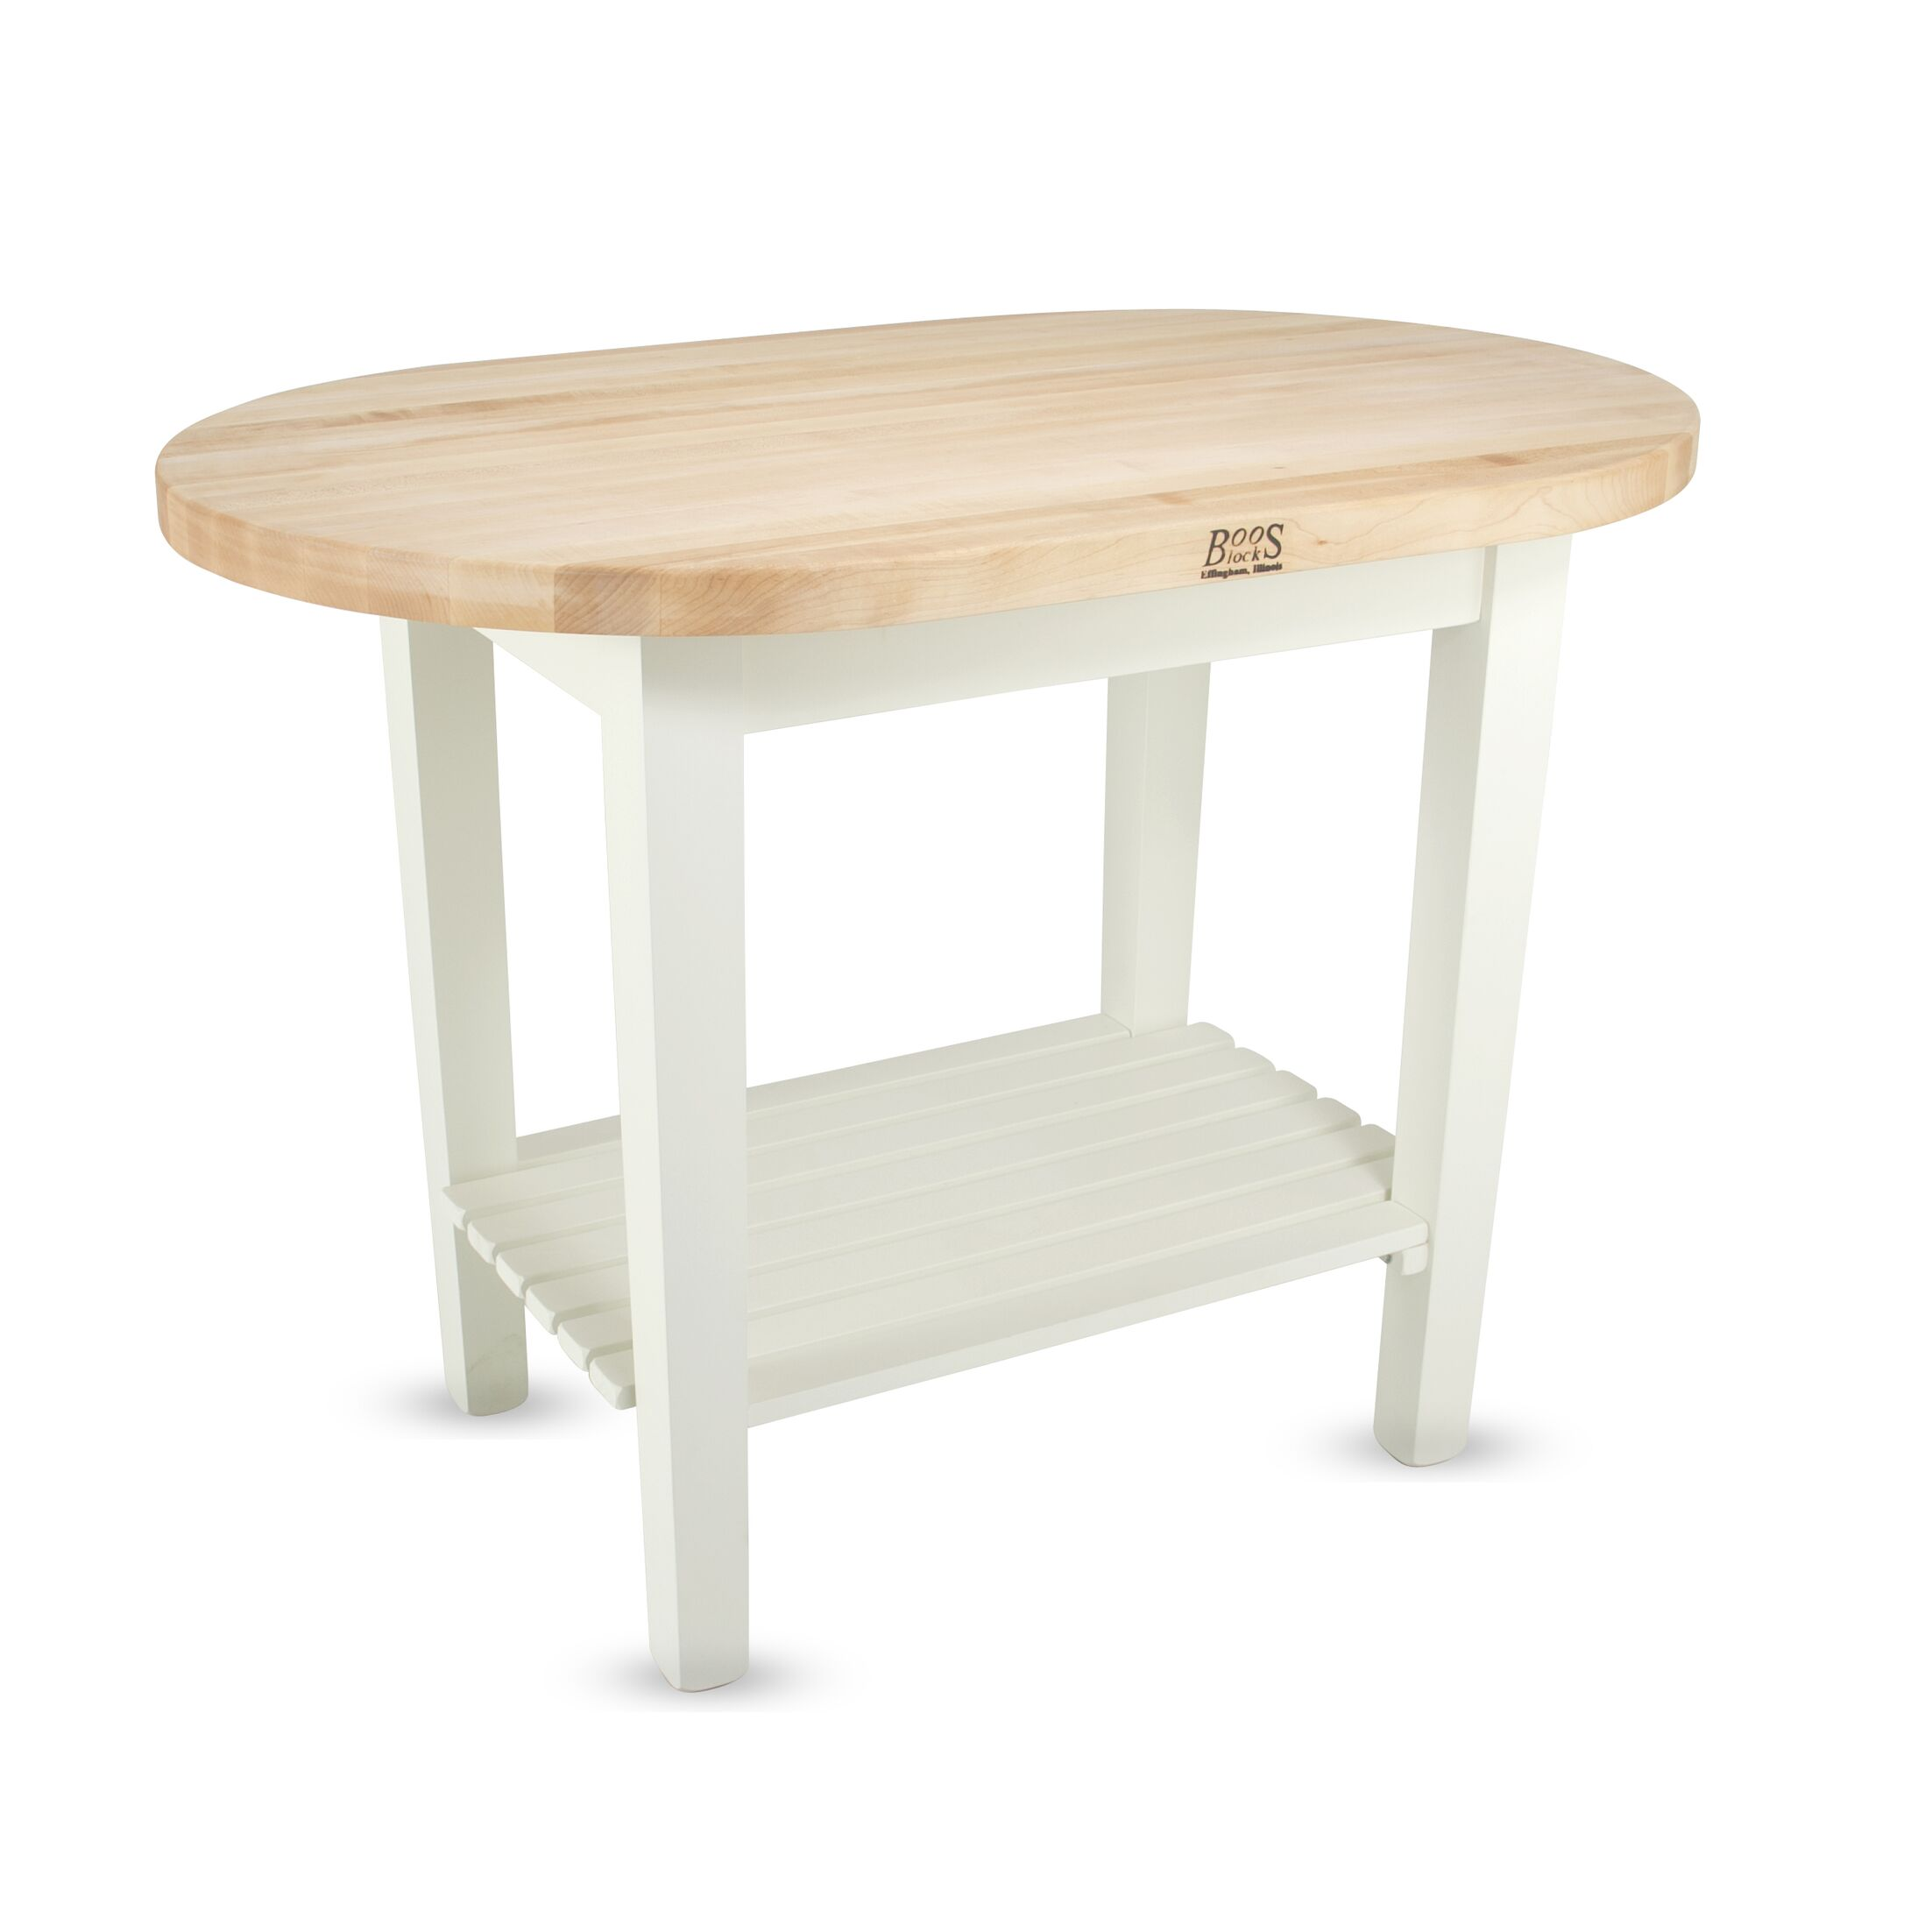 Eliptical C-Table Prep Table with Butcher Block Top Base Finish: Natural maple, Number of Shelves: One